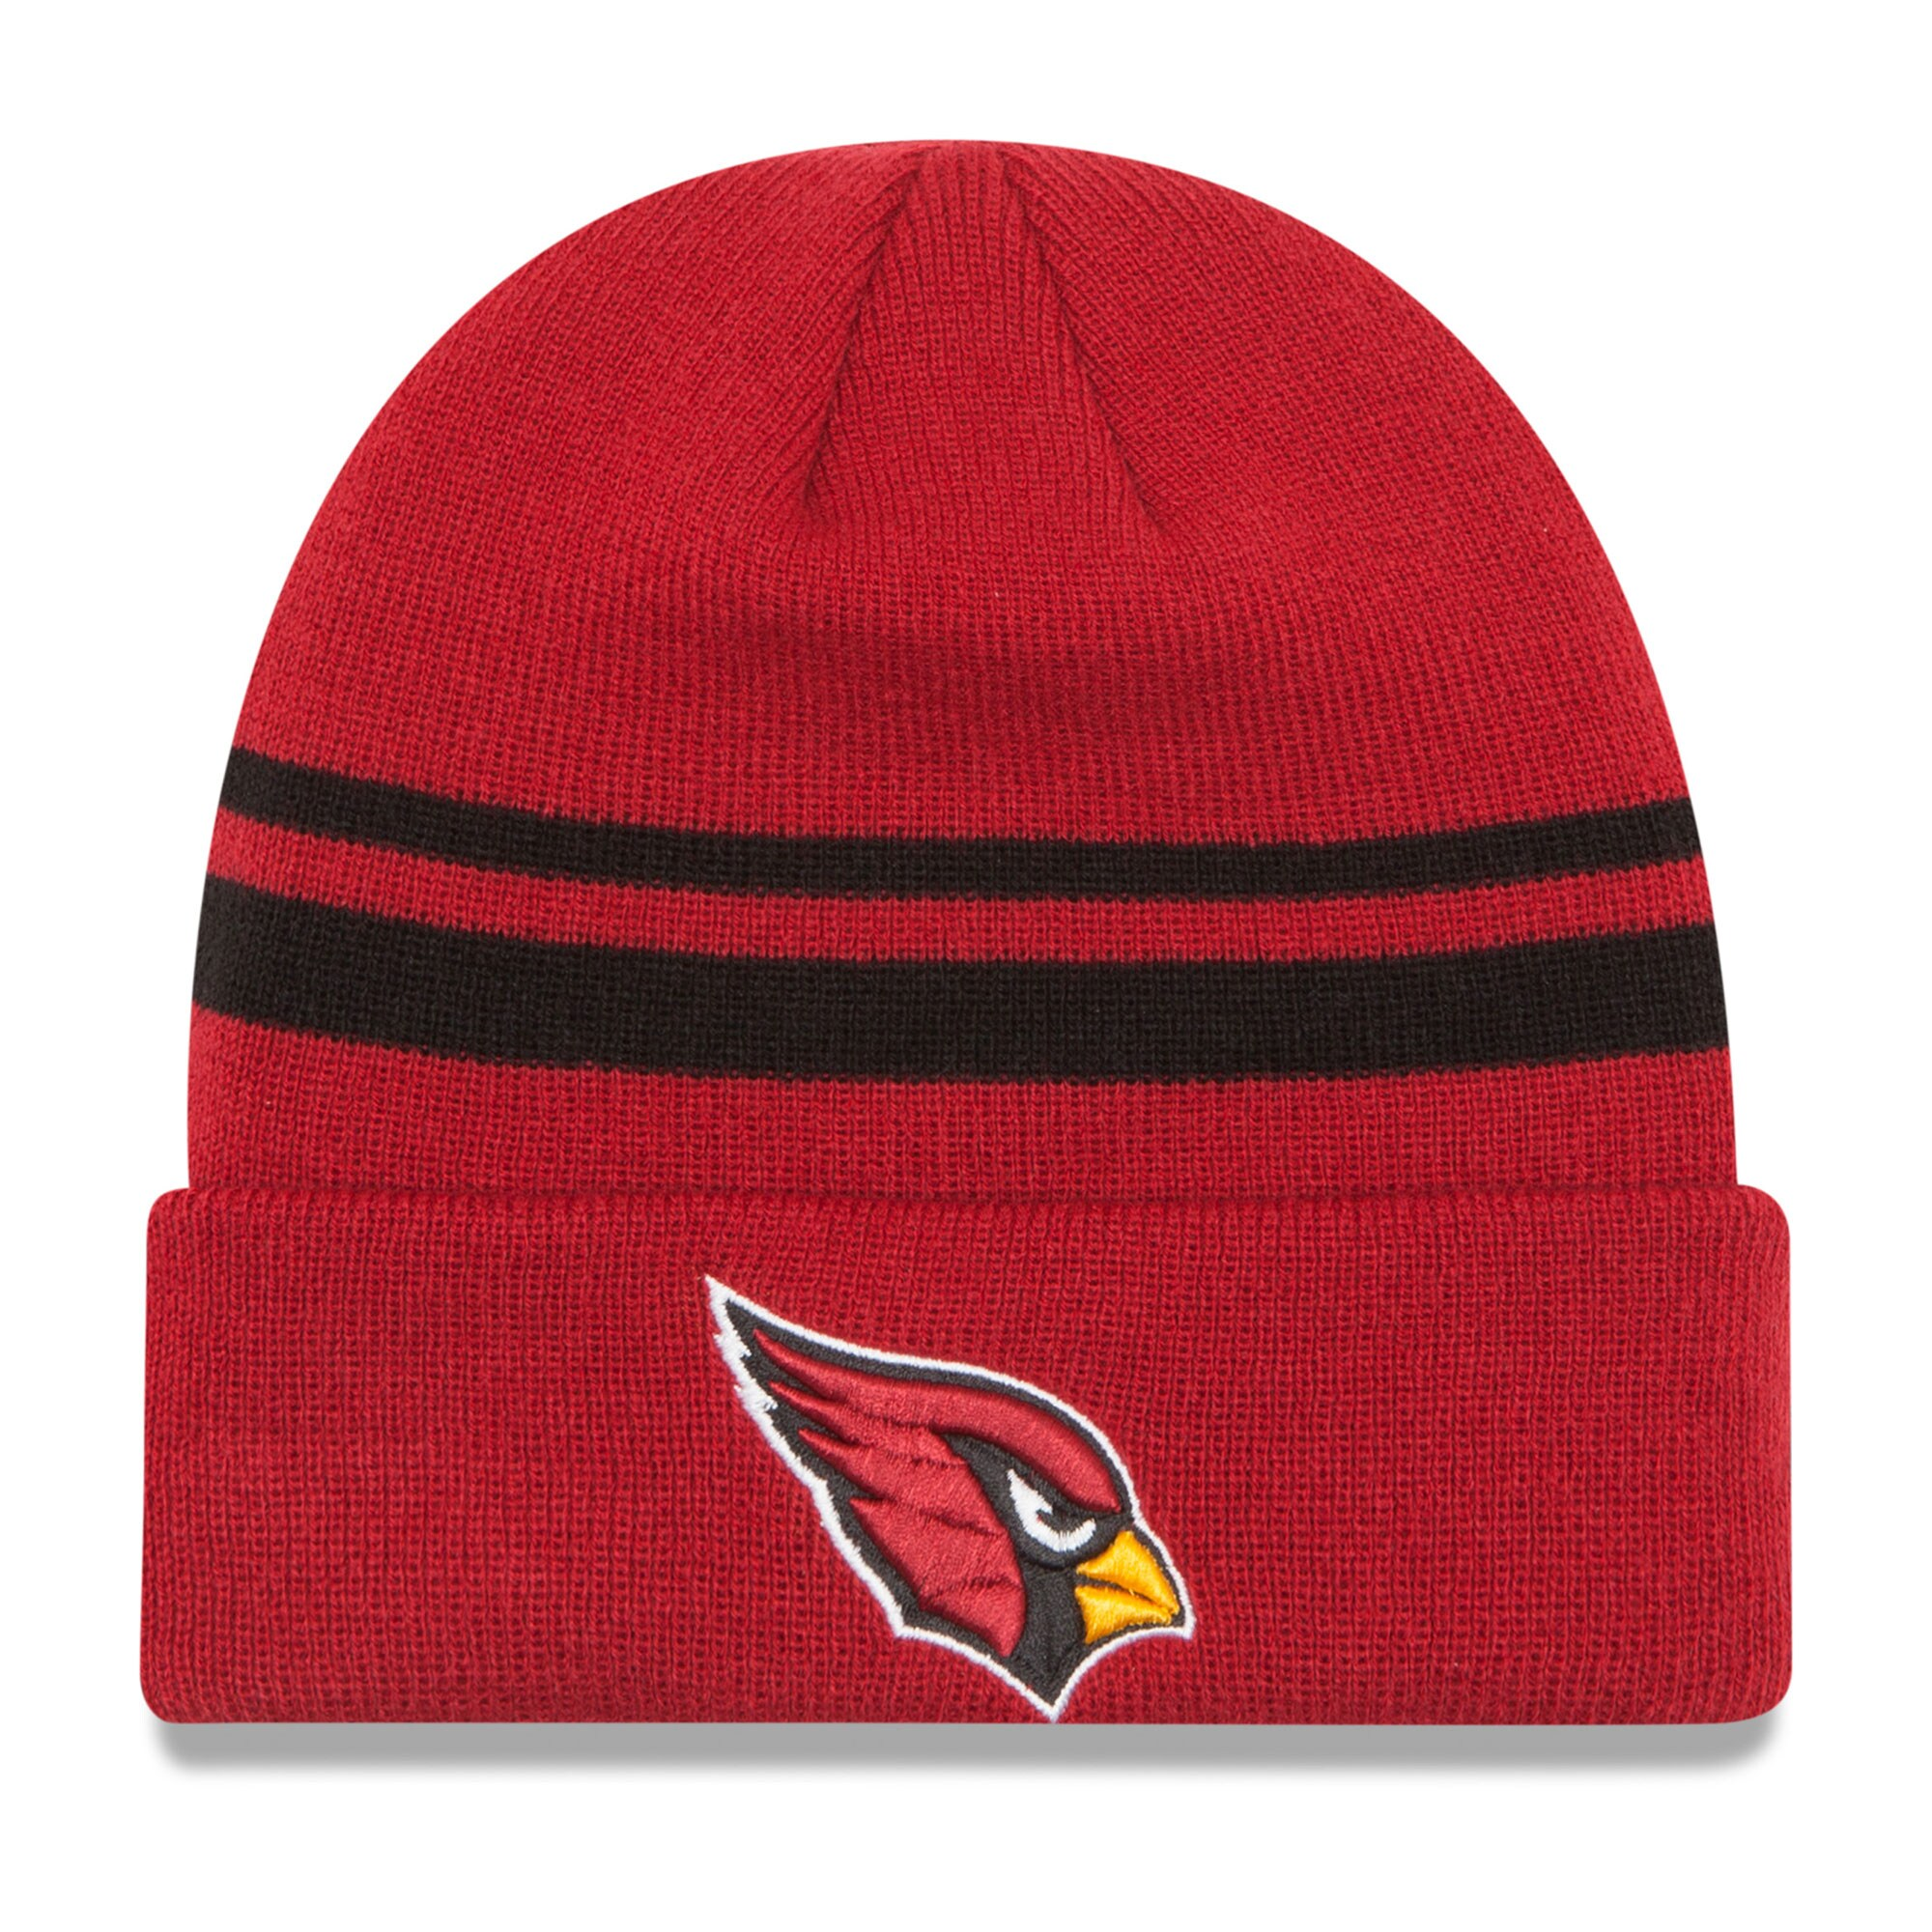 Arizona Cardinals New Era Team Logo Cuffed Knit Hat - Cardinal